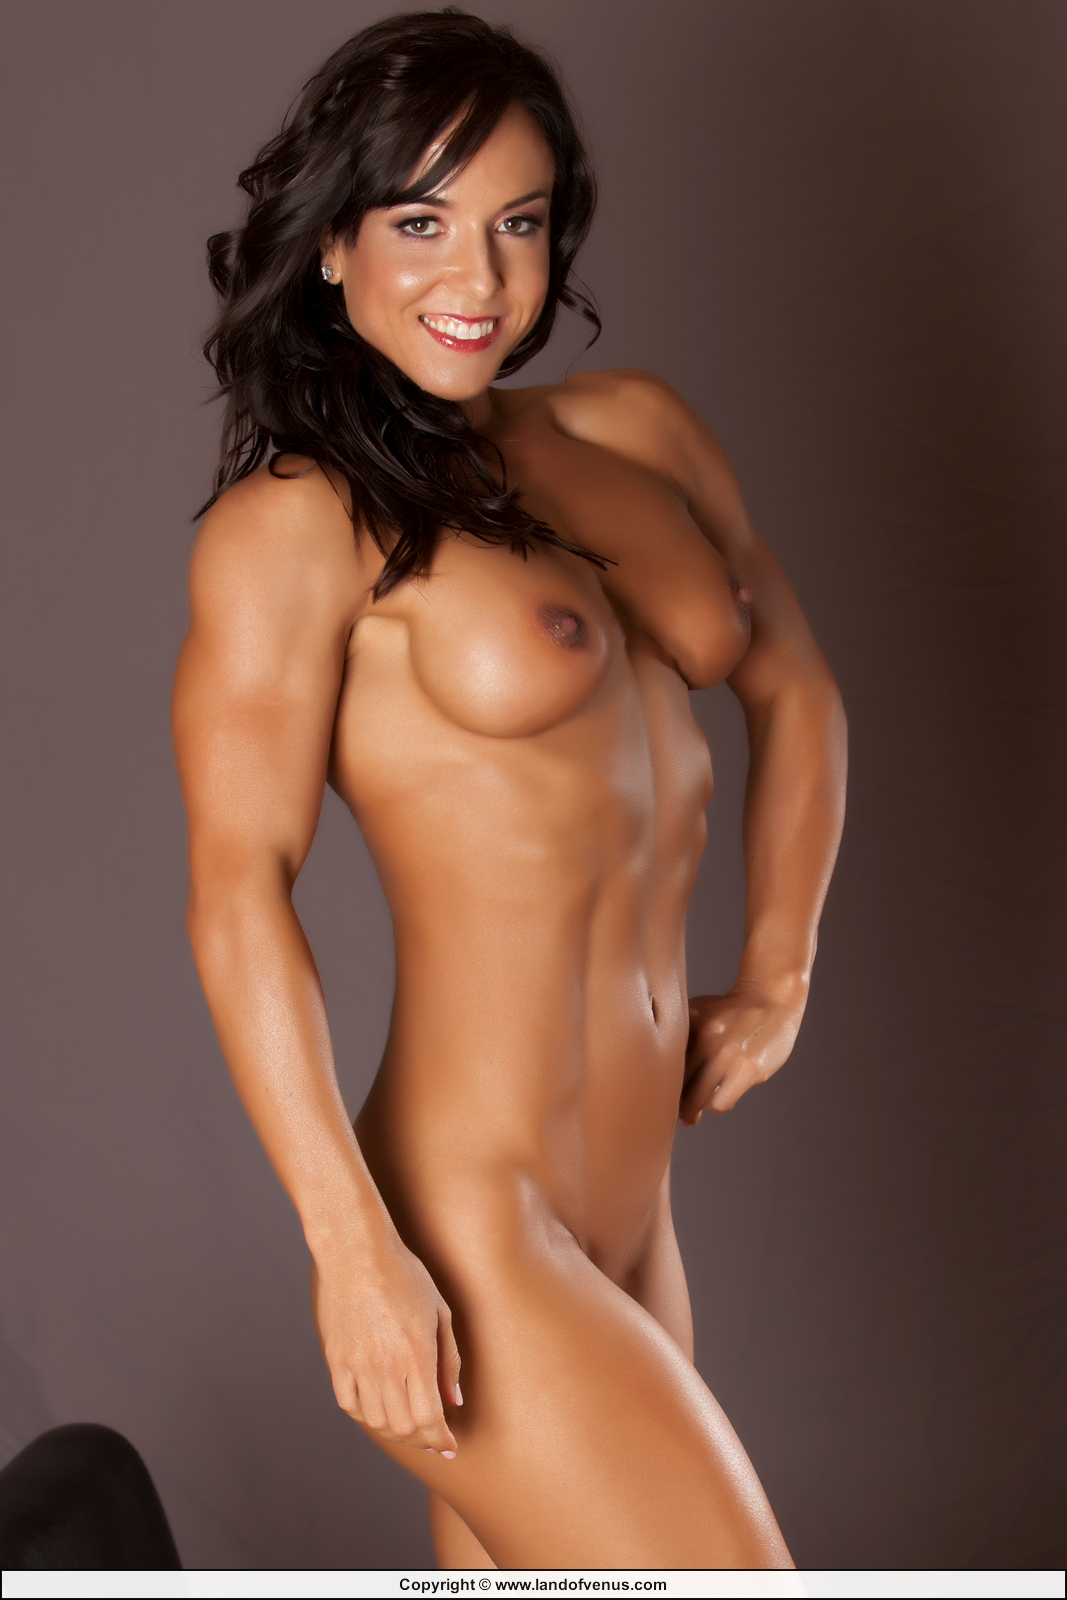 Hot nude women fitness models